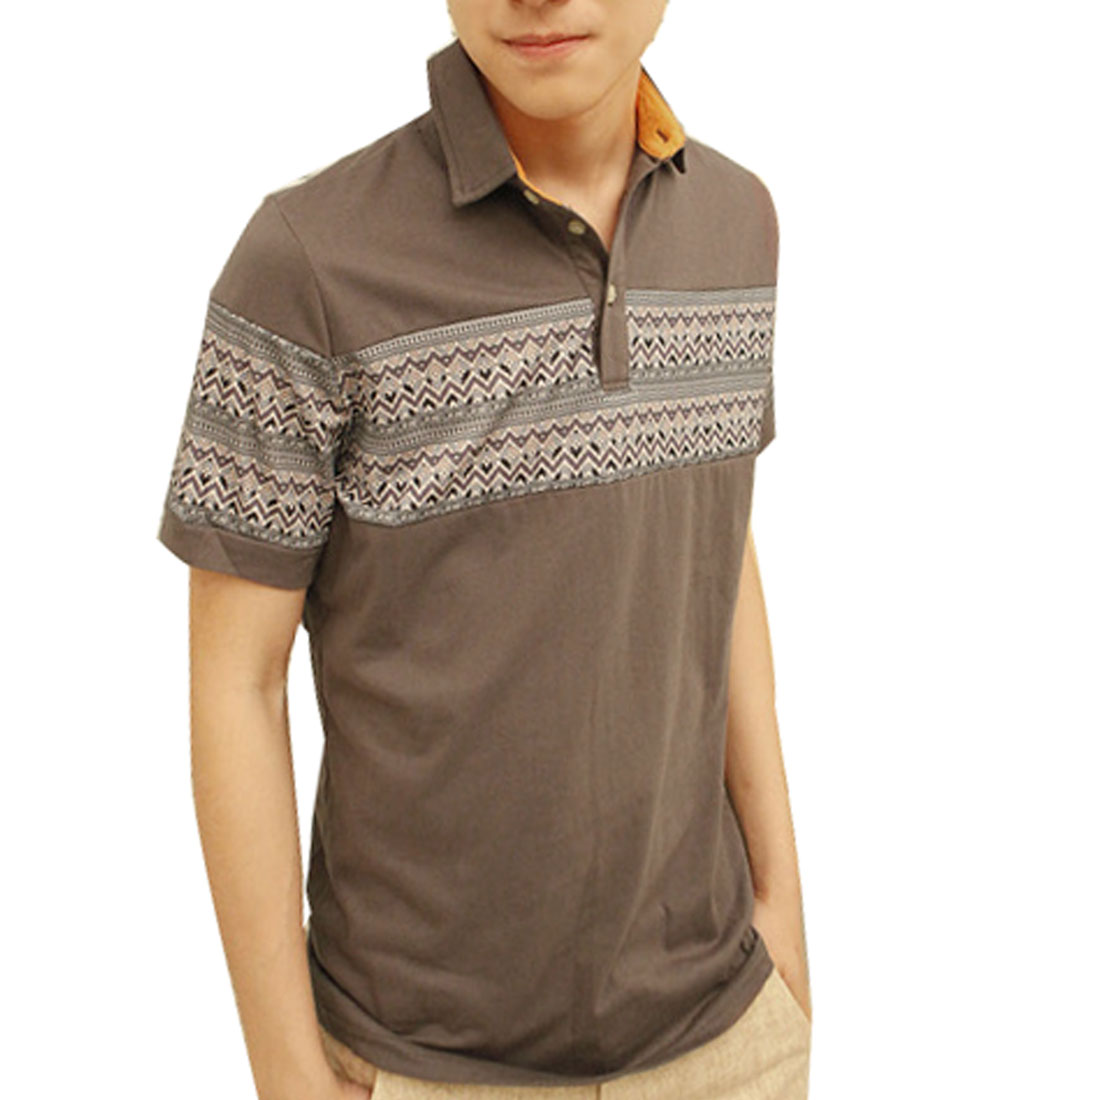 Man Summer Short Sleeves Zigzag Pattern Point Collar Polo Shirt Brown S